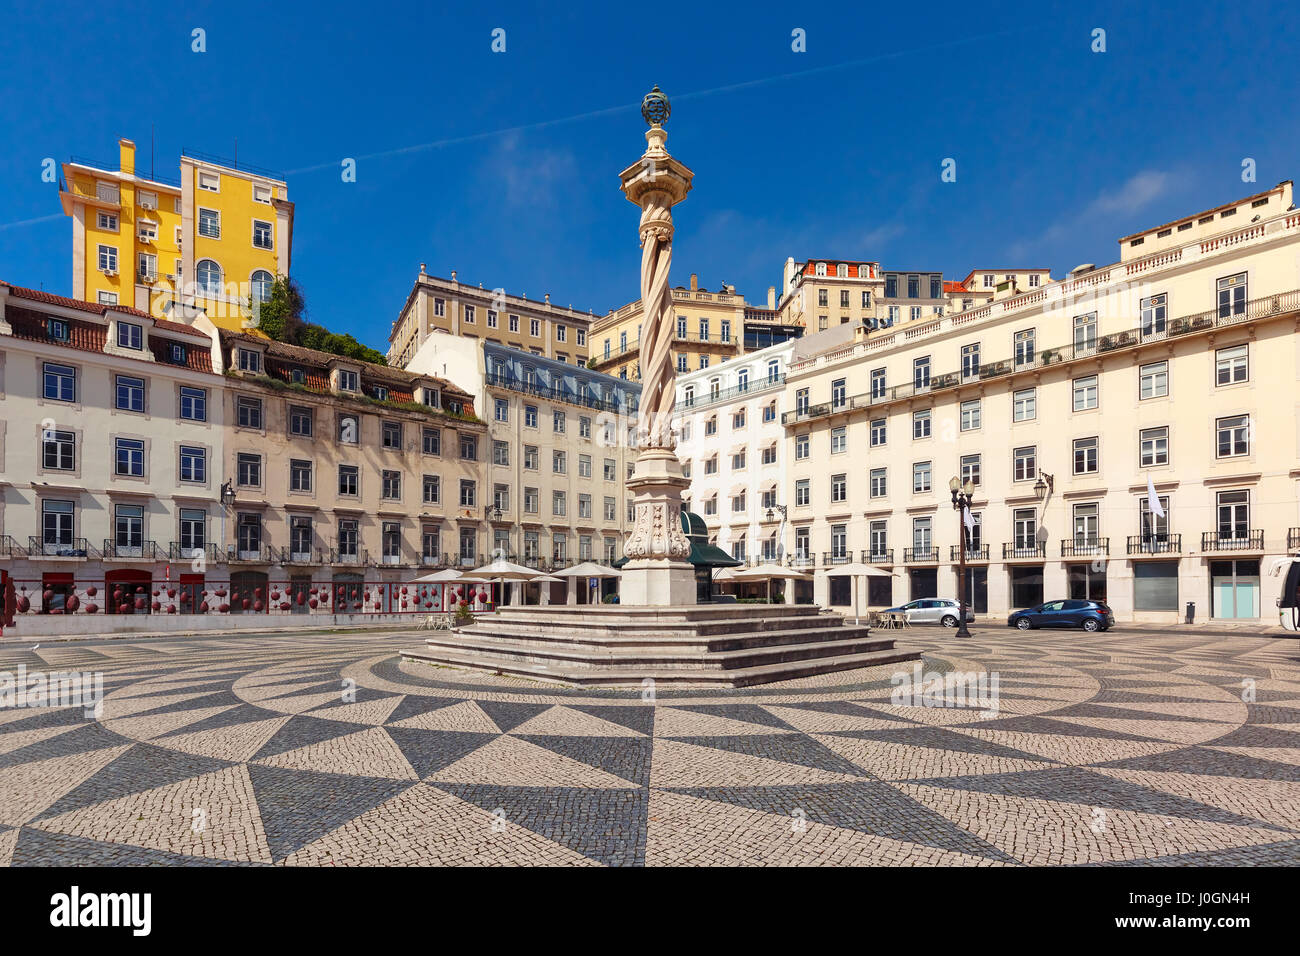 Town Hall Square with a beautiful geometric mosaic in Lisbon, Portugal. In the center of the square the pillory - Stock Image